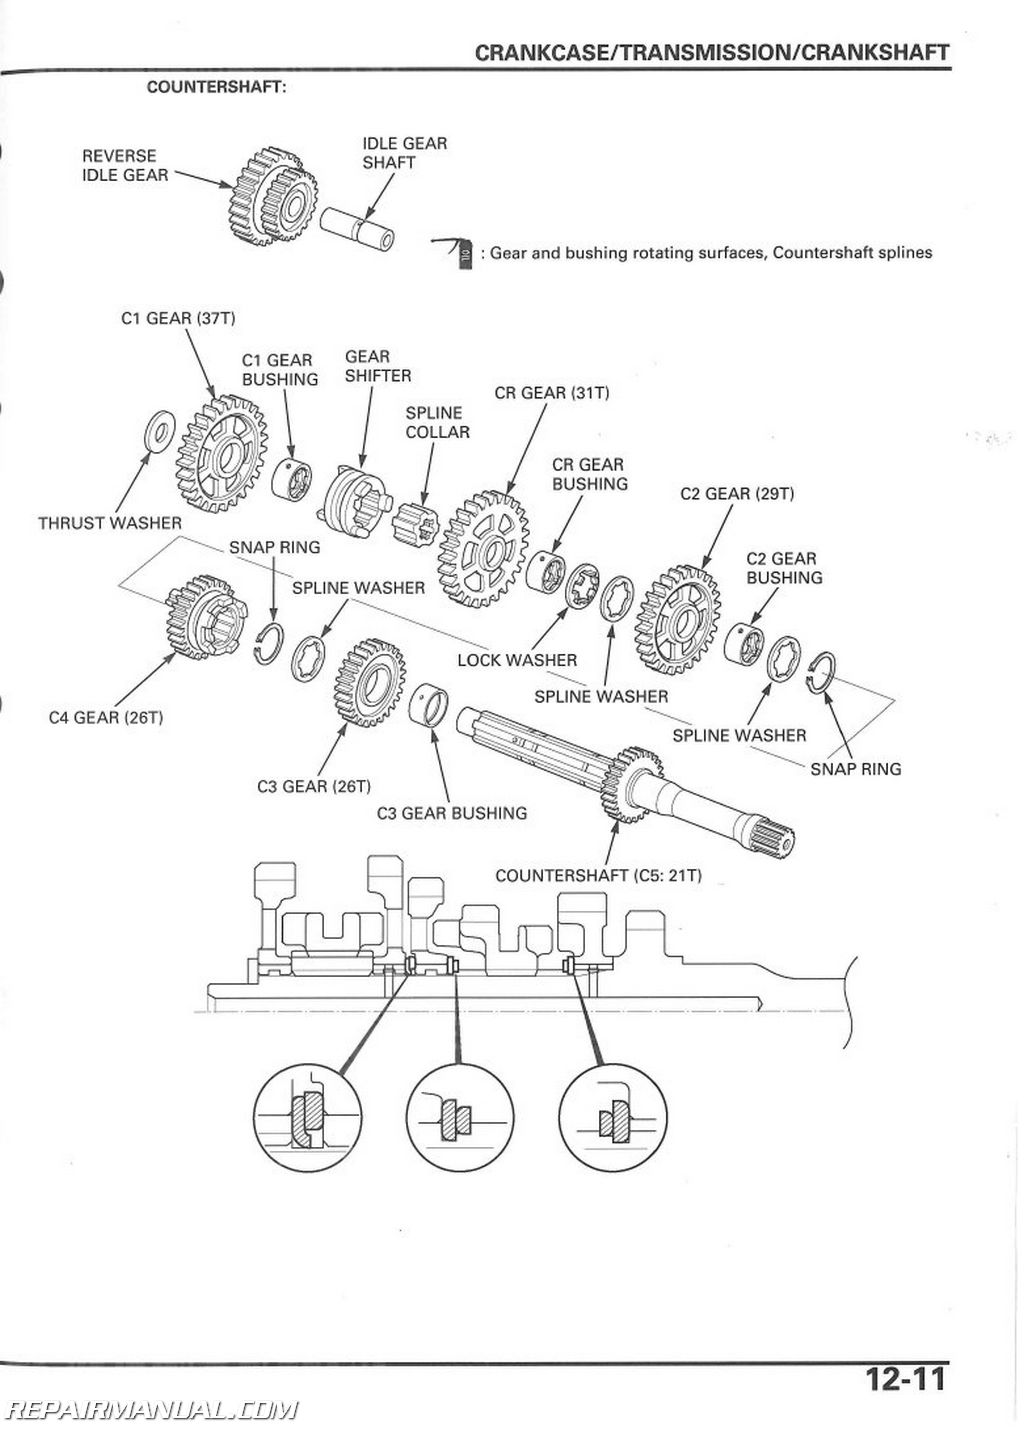 Trx250ex Wiring Diagram Libraries Wire Honda Rancher Trx350fe 2006 2014 X Sportrax Service Manualtrx250ex 15